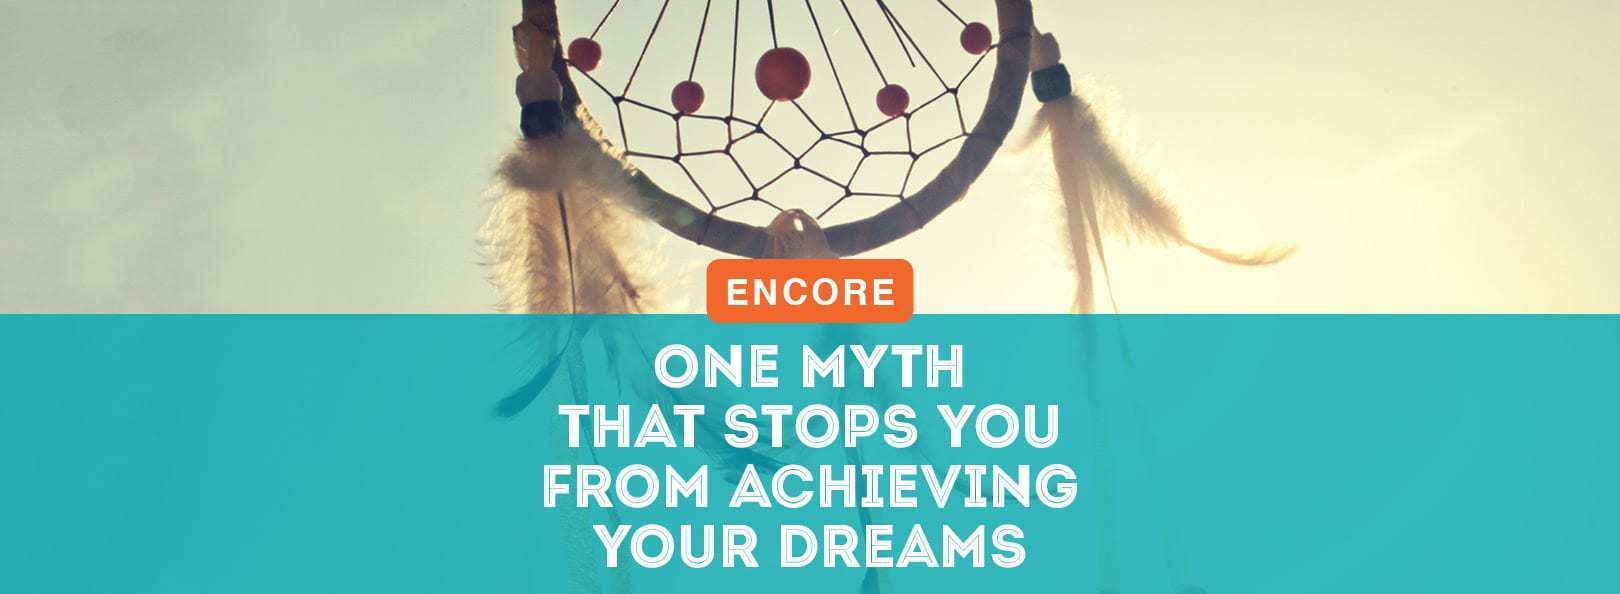 ENCORE: The One Myth That Stops You From Achieving Your Dreams